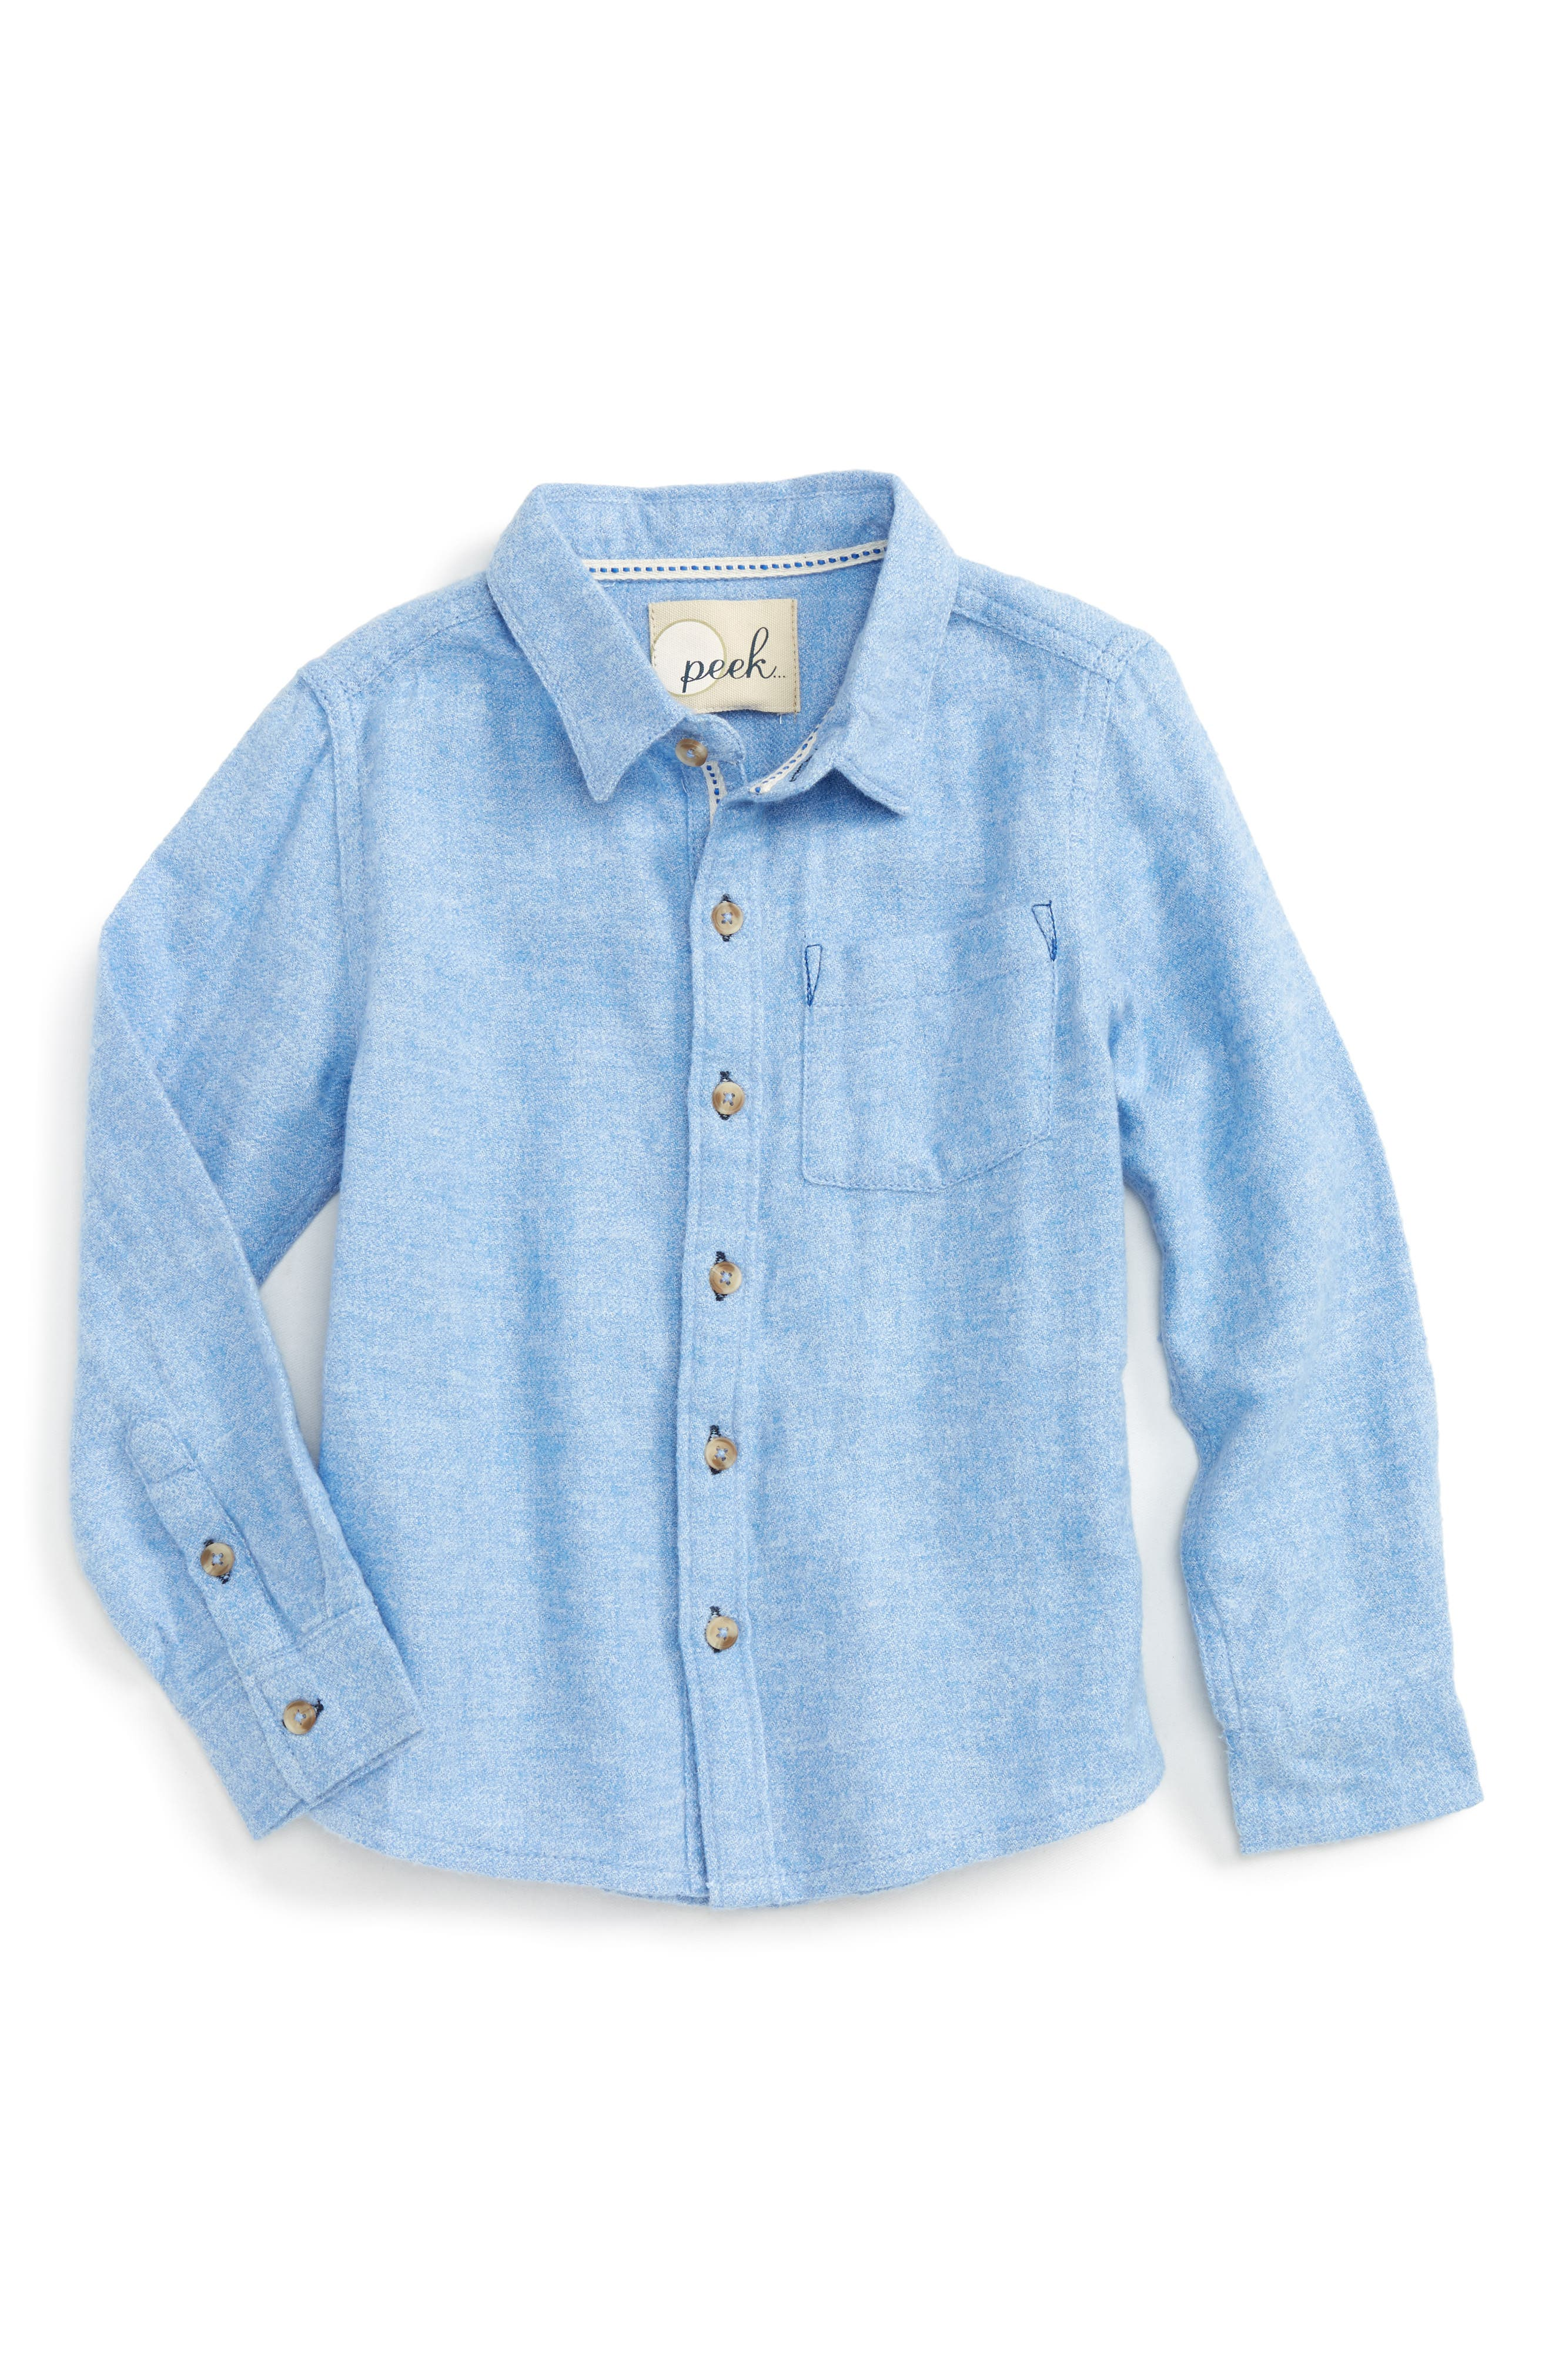 Peek James Woven Flannel Shirt (Toddler Boys, Little Boys & Big Boys)